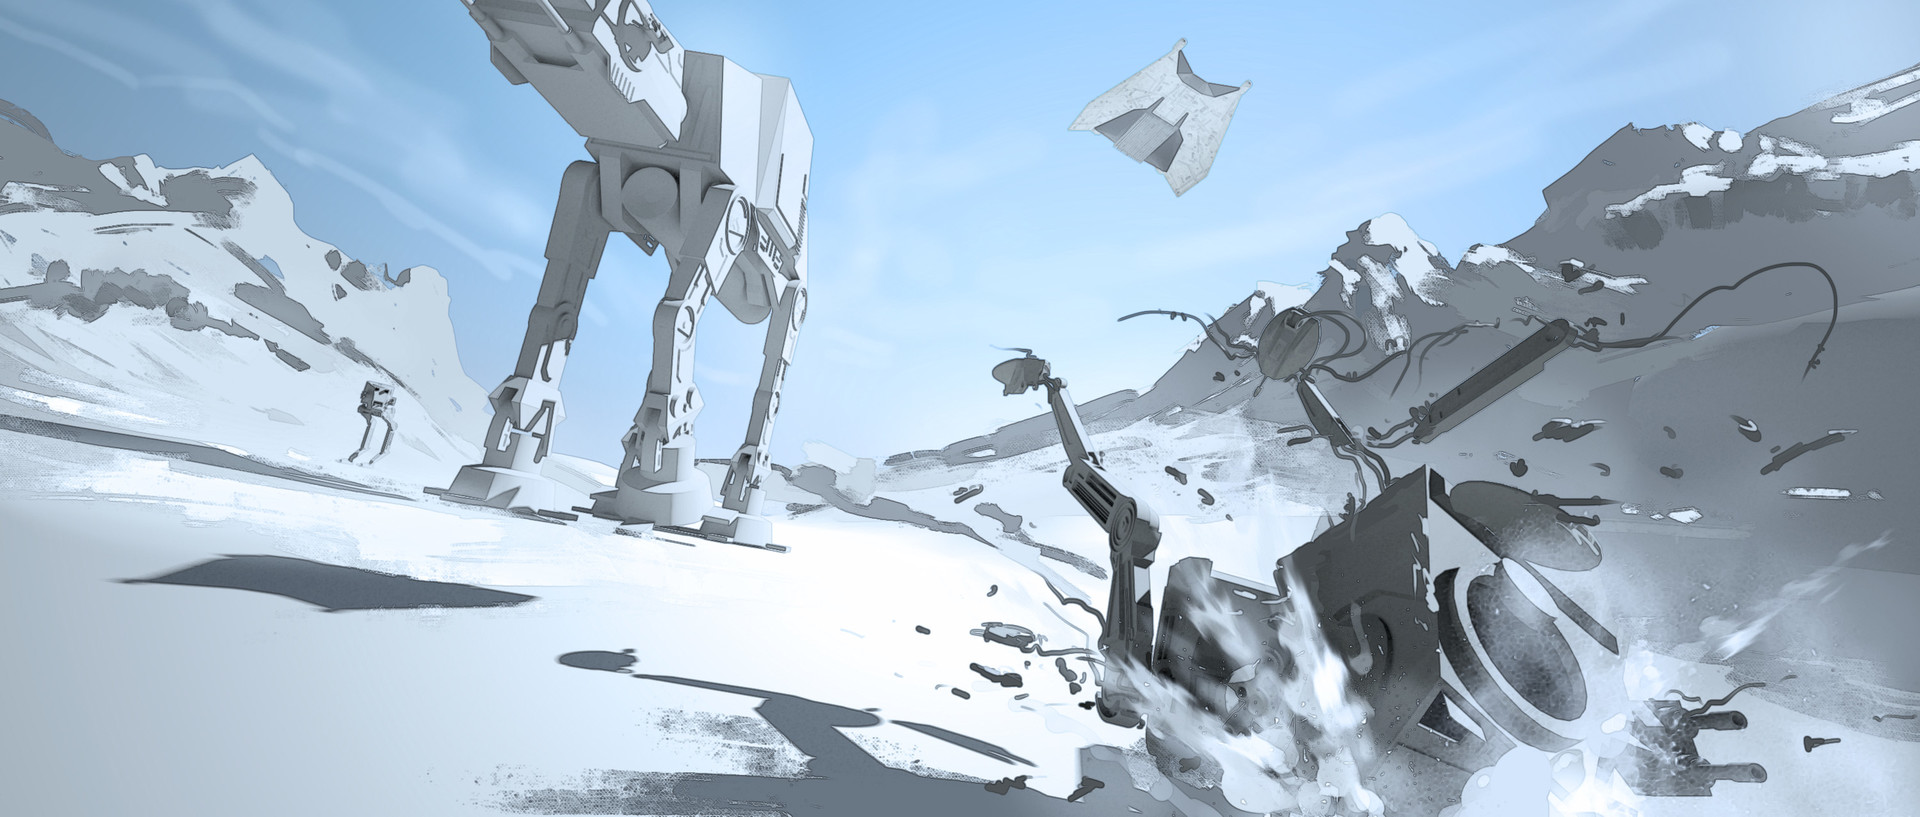 Jacek irzykowski hoth moment 01 concept